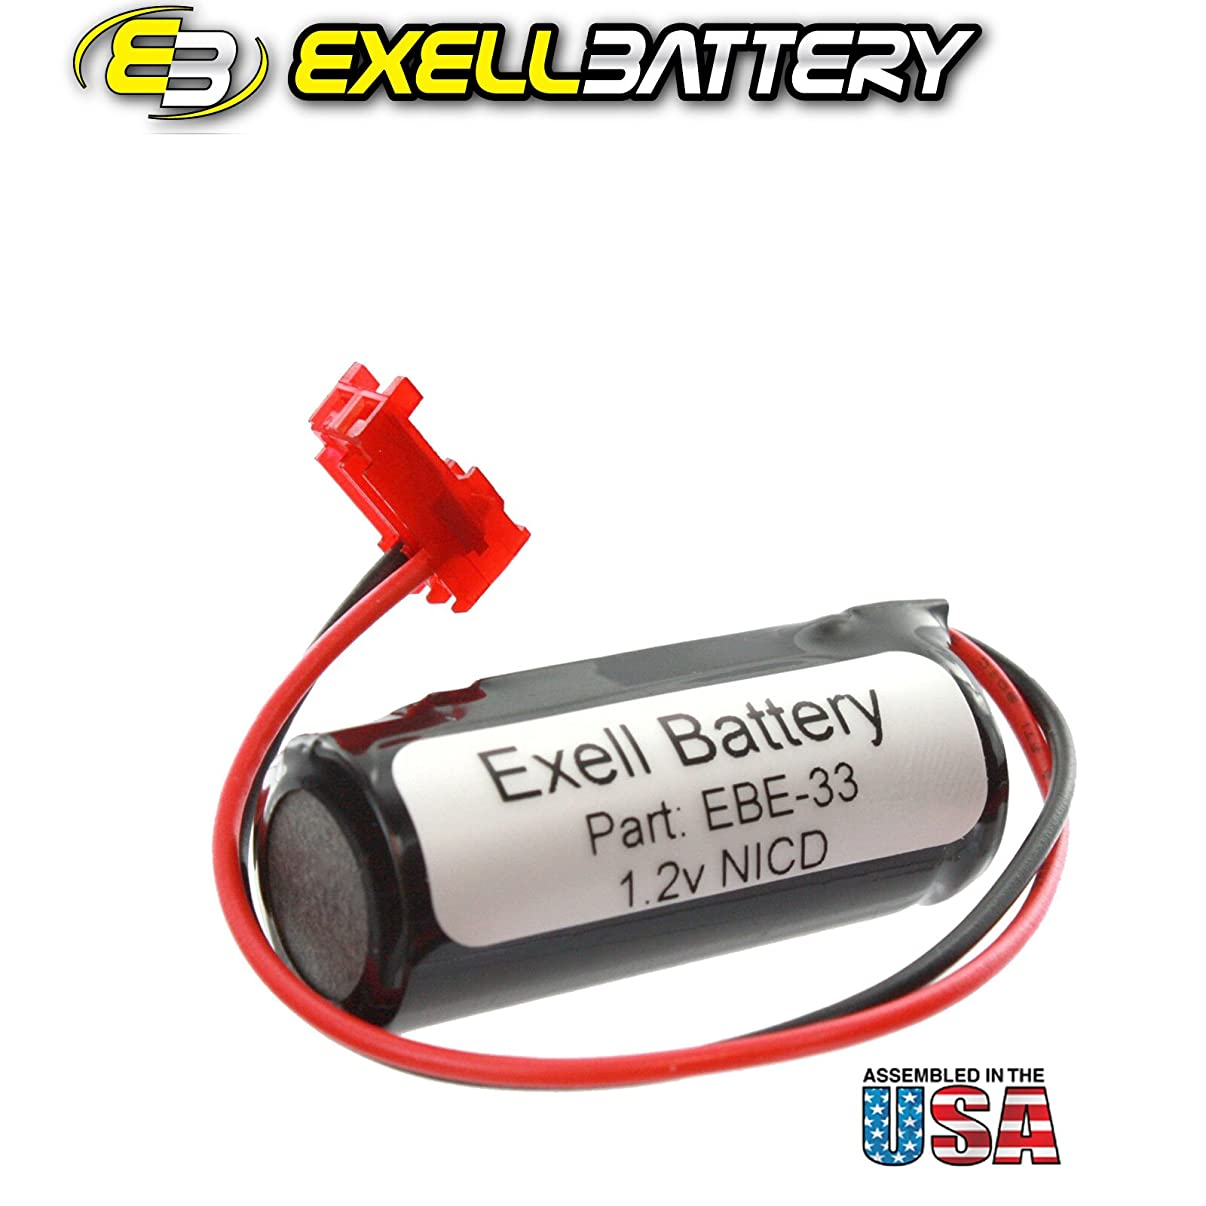 Emergency/Exit Lighting Battery Fits and Replaces Interstate ANIC1169 Lithonia ELB1210N Lithonia ELB1P201N Lithonia ELB1P201N2 Lithonia ELB1P2901N Lithonia LQMSW3R12277ELW Saft 16440 USA Ship